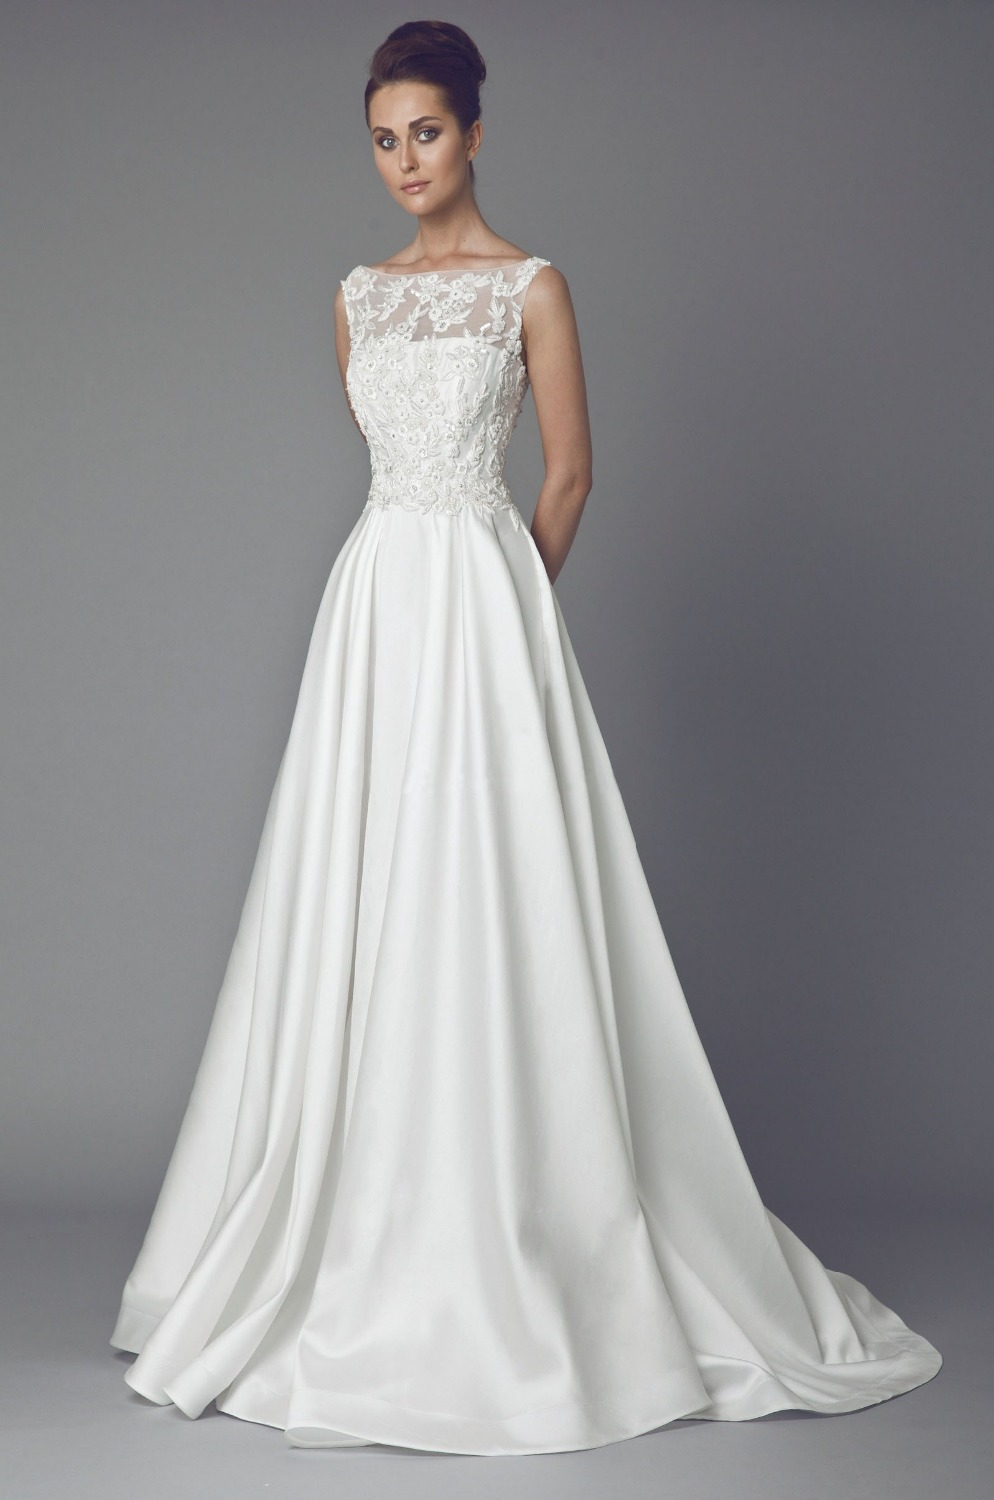 wedding dresses wedding gowns best images about Wedding Dresses on Pinterest Gold wedding gowns Retro wedding dresses and Vintage wedding dresses